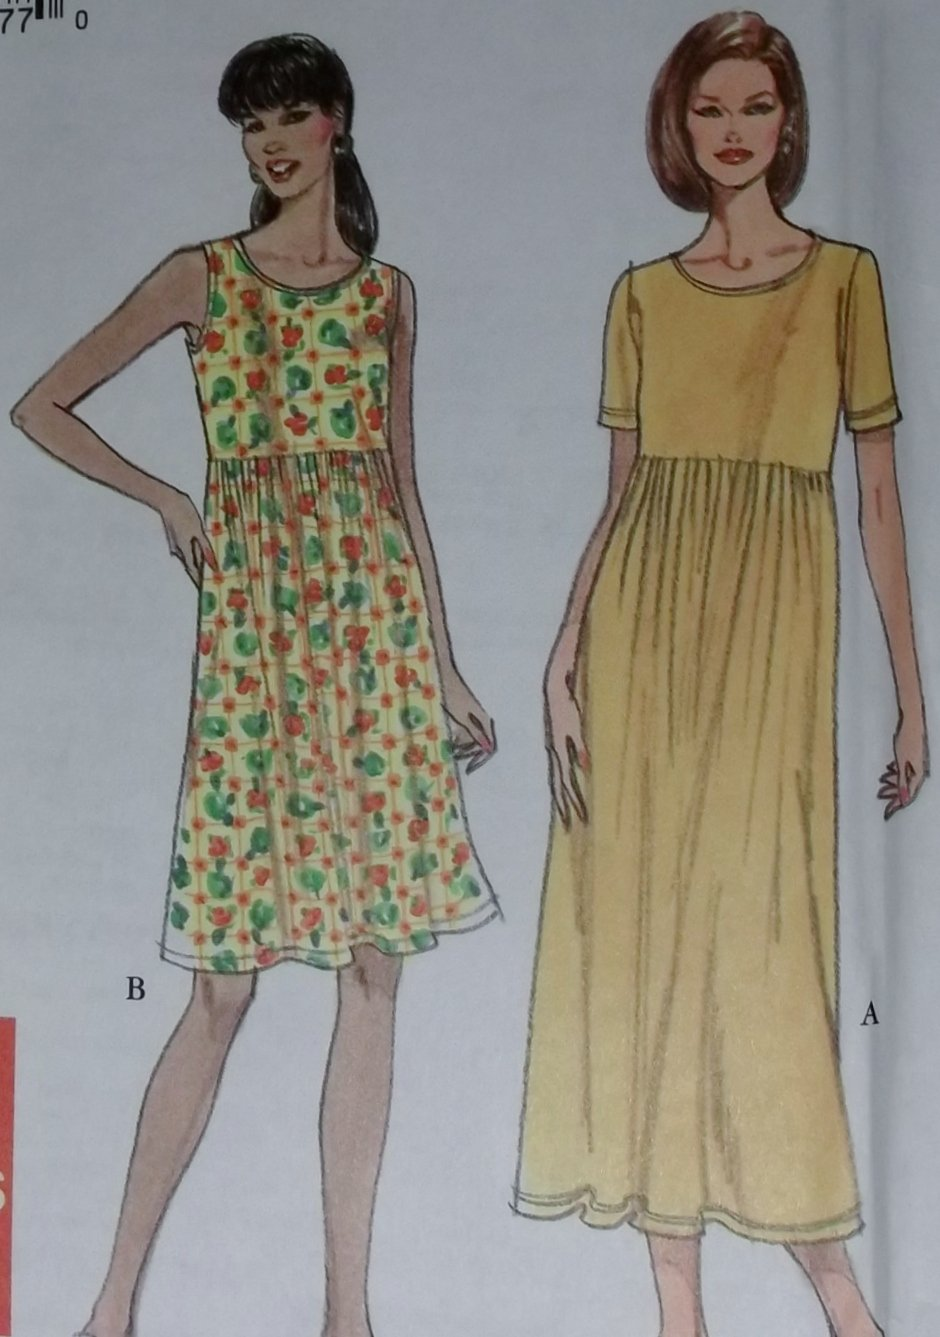 Simple Knit Dress Pattern : Simplicity 8190 Easy Misses Knit Dress Pattern, Size 6-24 UNCUT